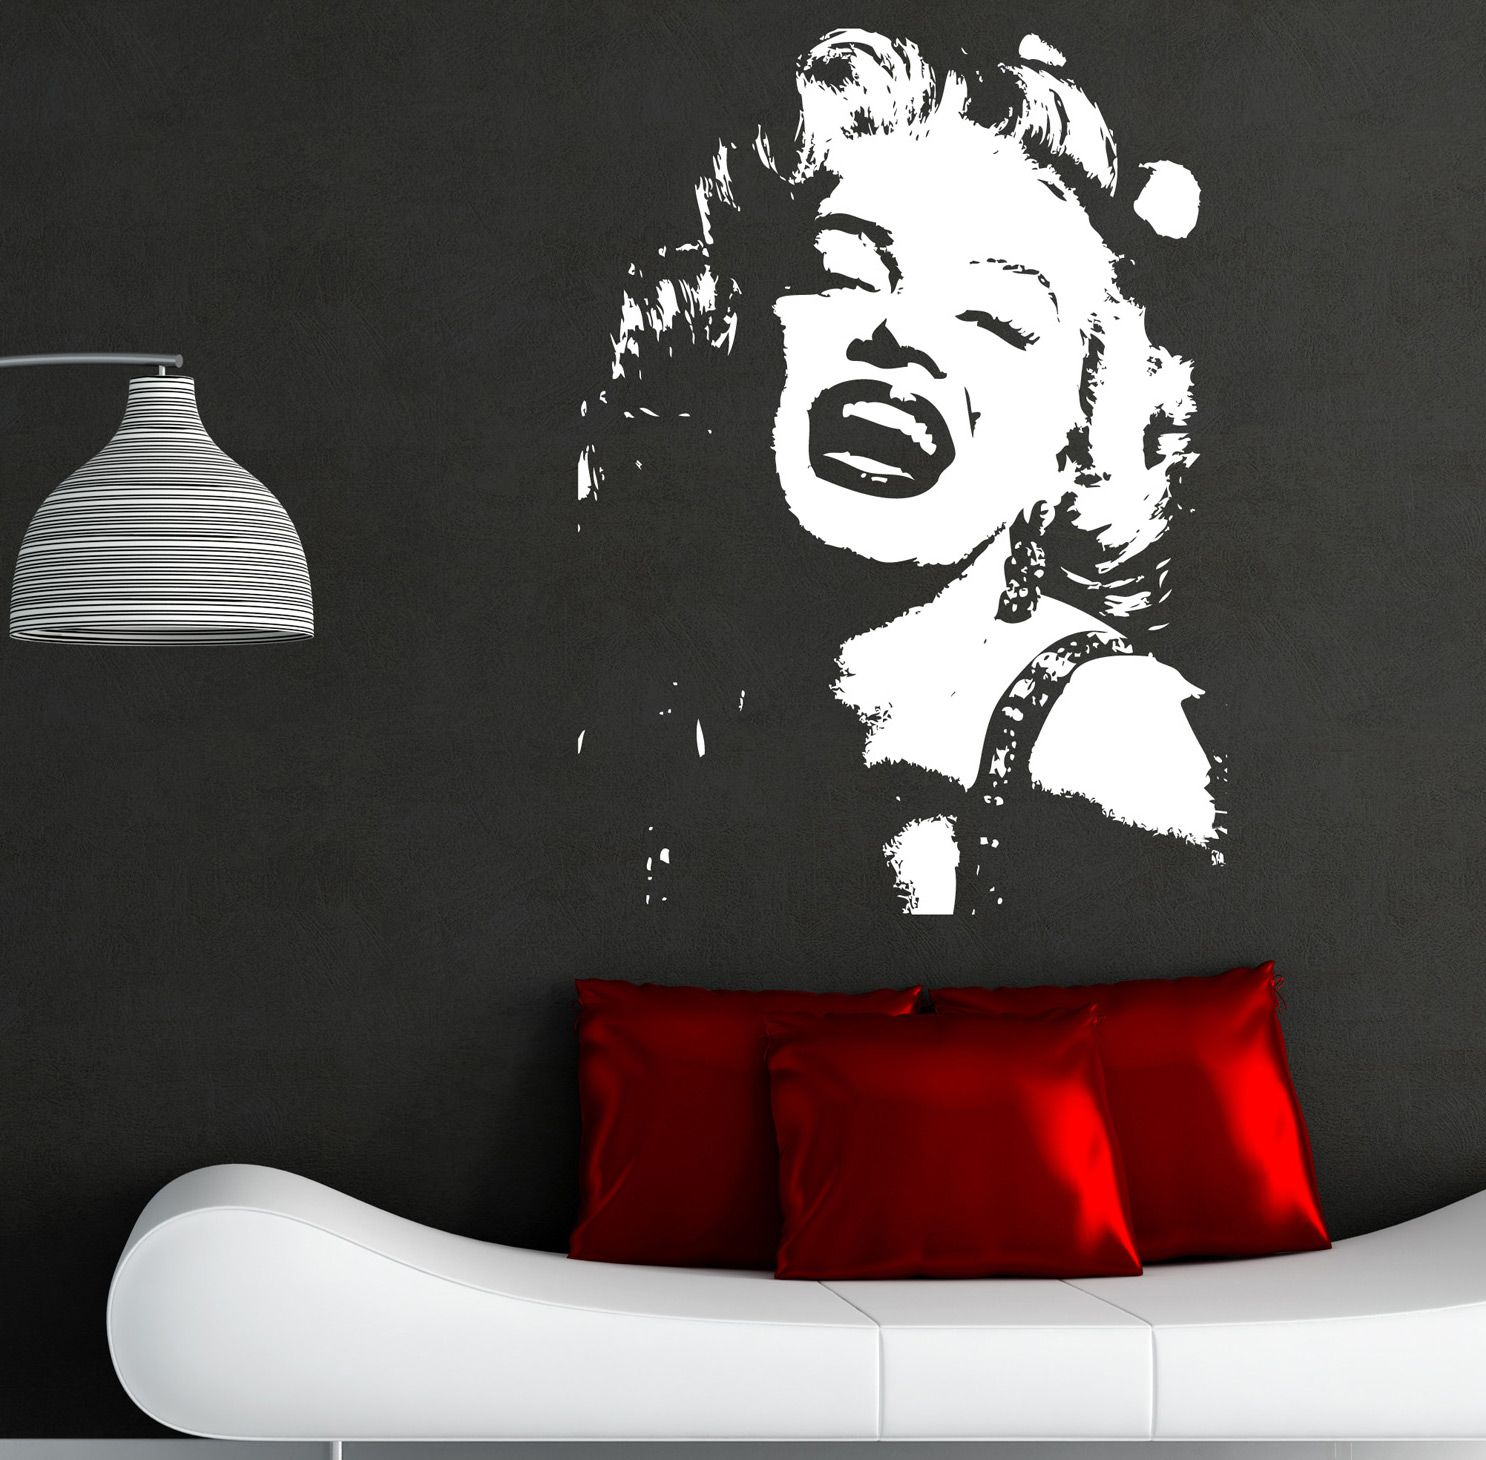 Lovely MARILYN MONROE WALL STICKER ART DECALS I1